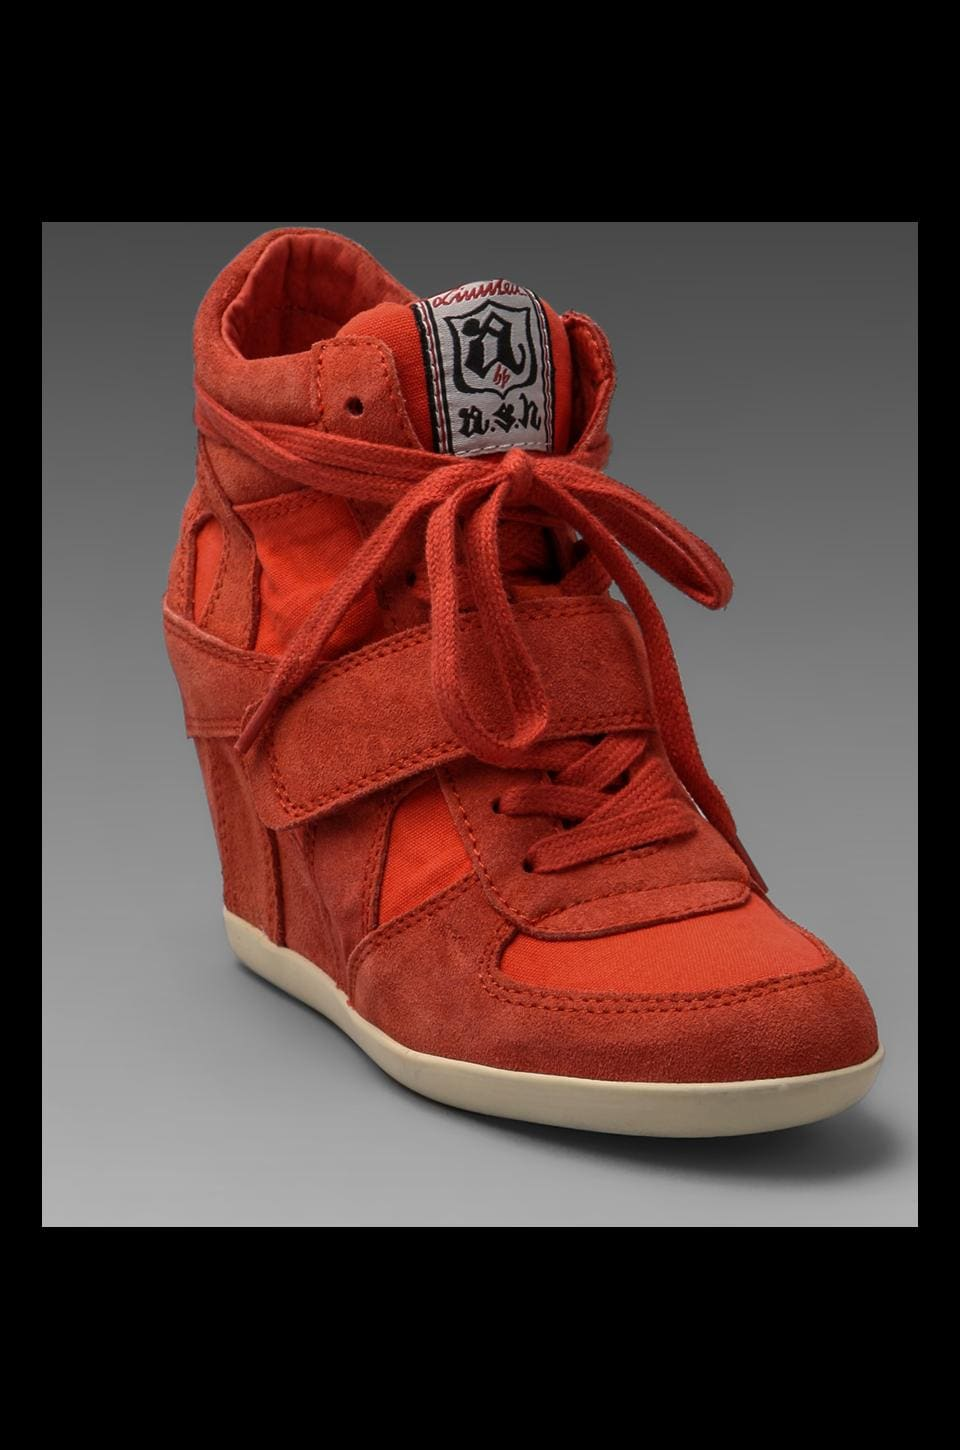 Ash Bowie Wedge Sneaker in Coral